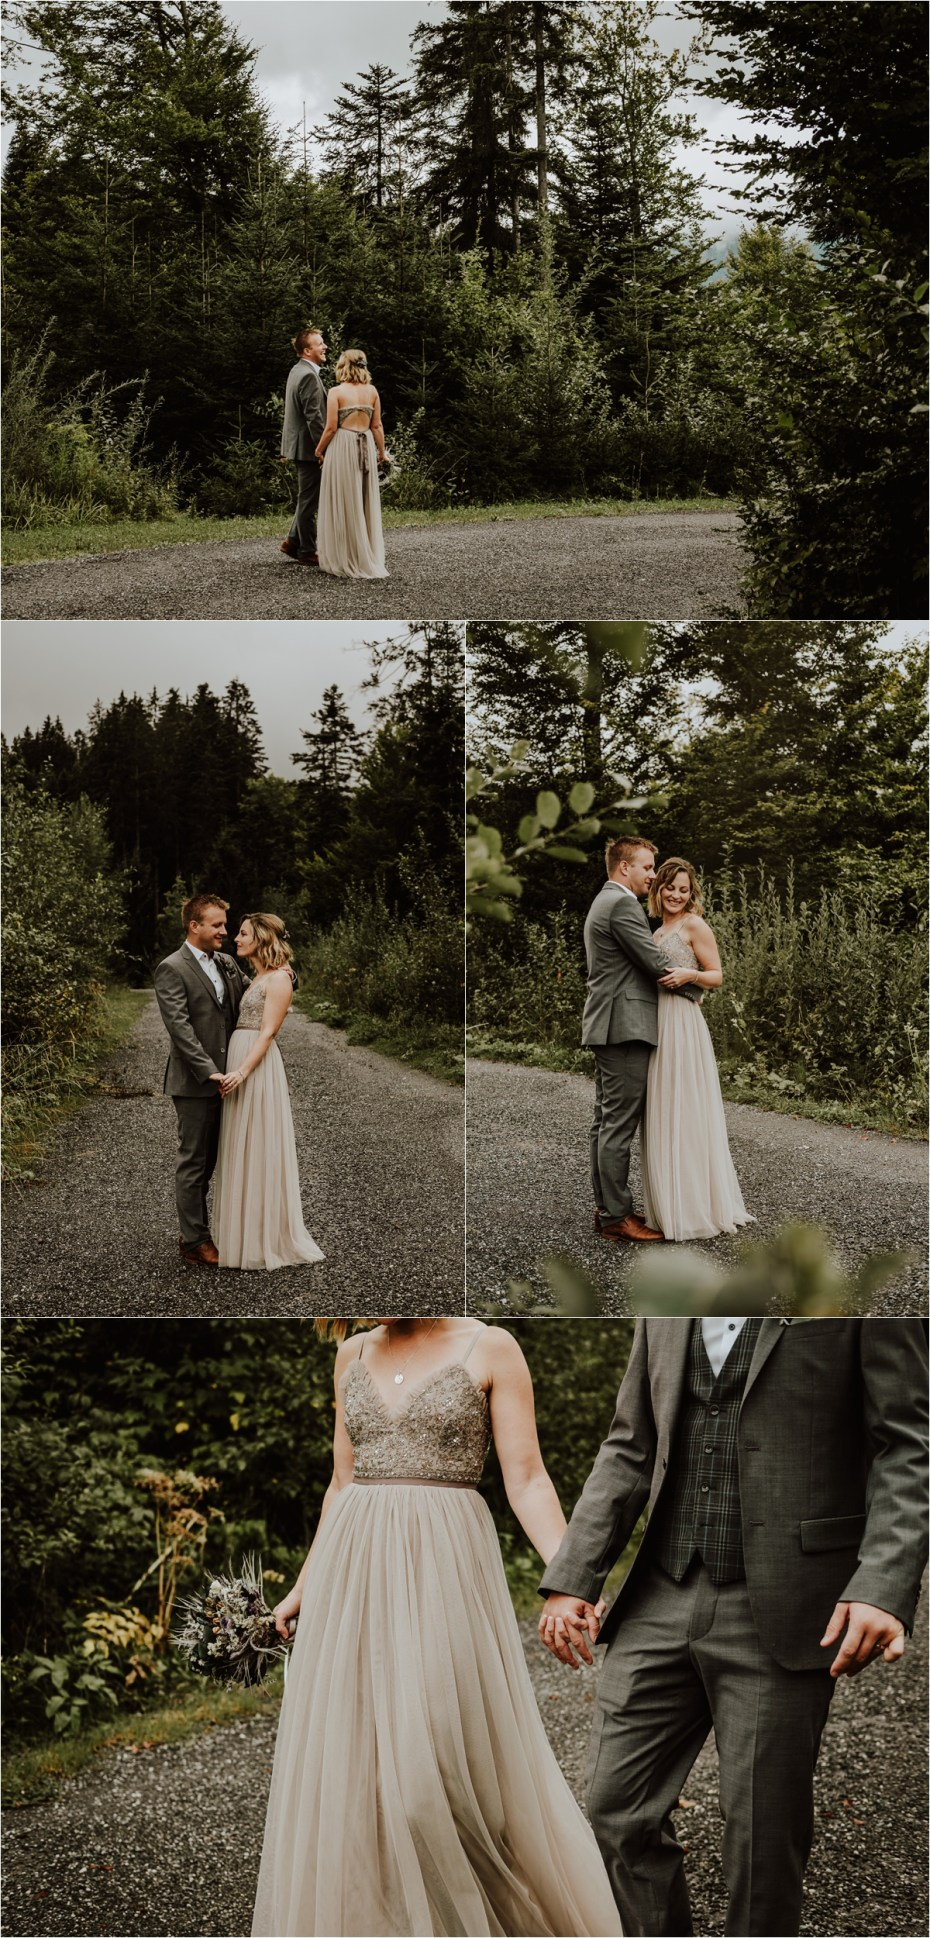 An ash coloured wedding dress from Needle & Thread for this bohemian bride by Wild Connections Photography